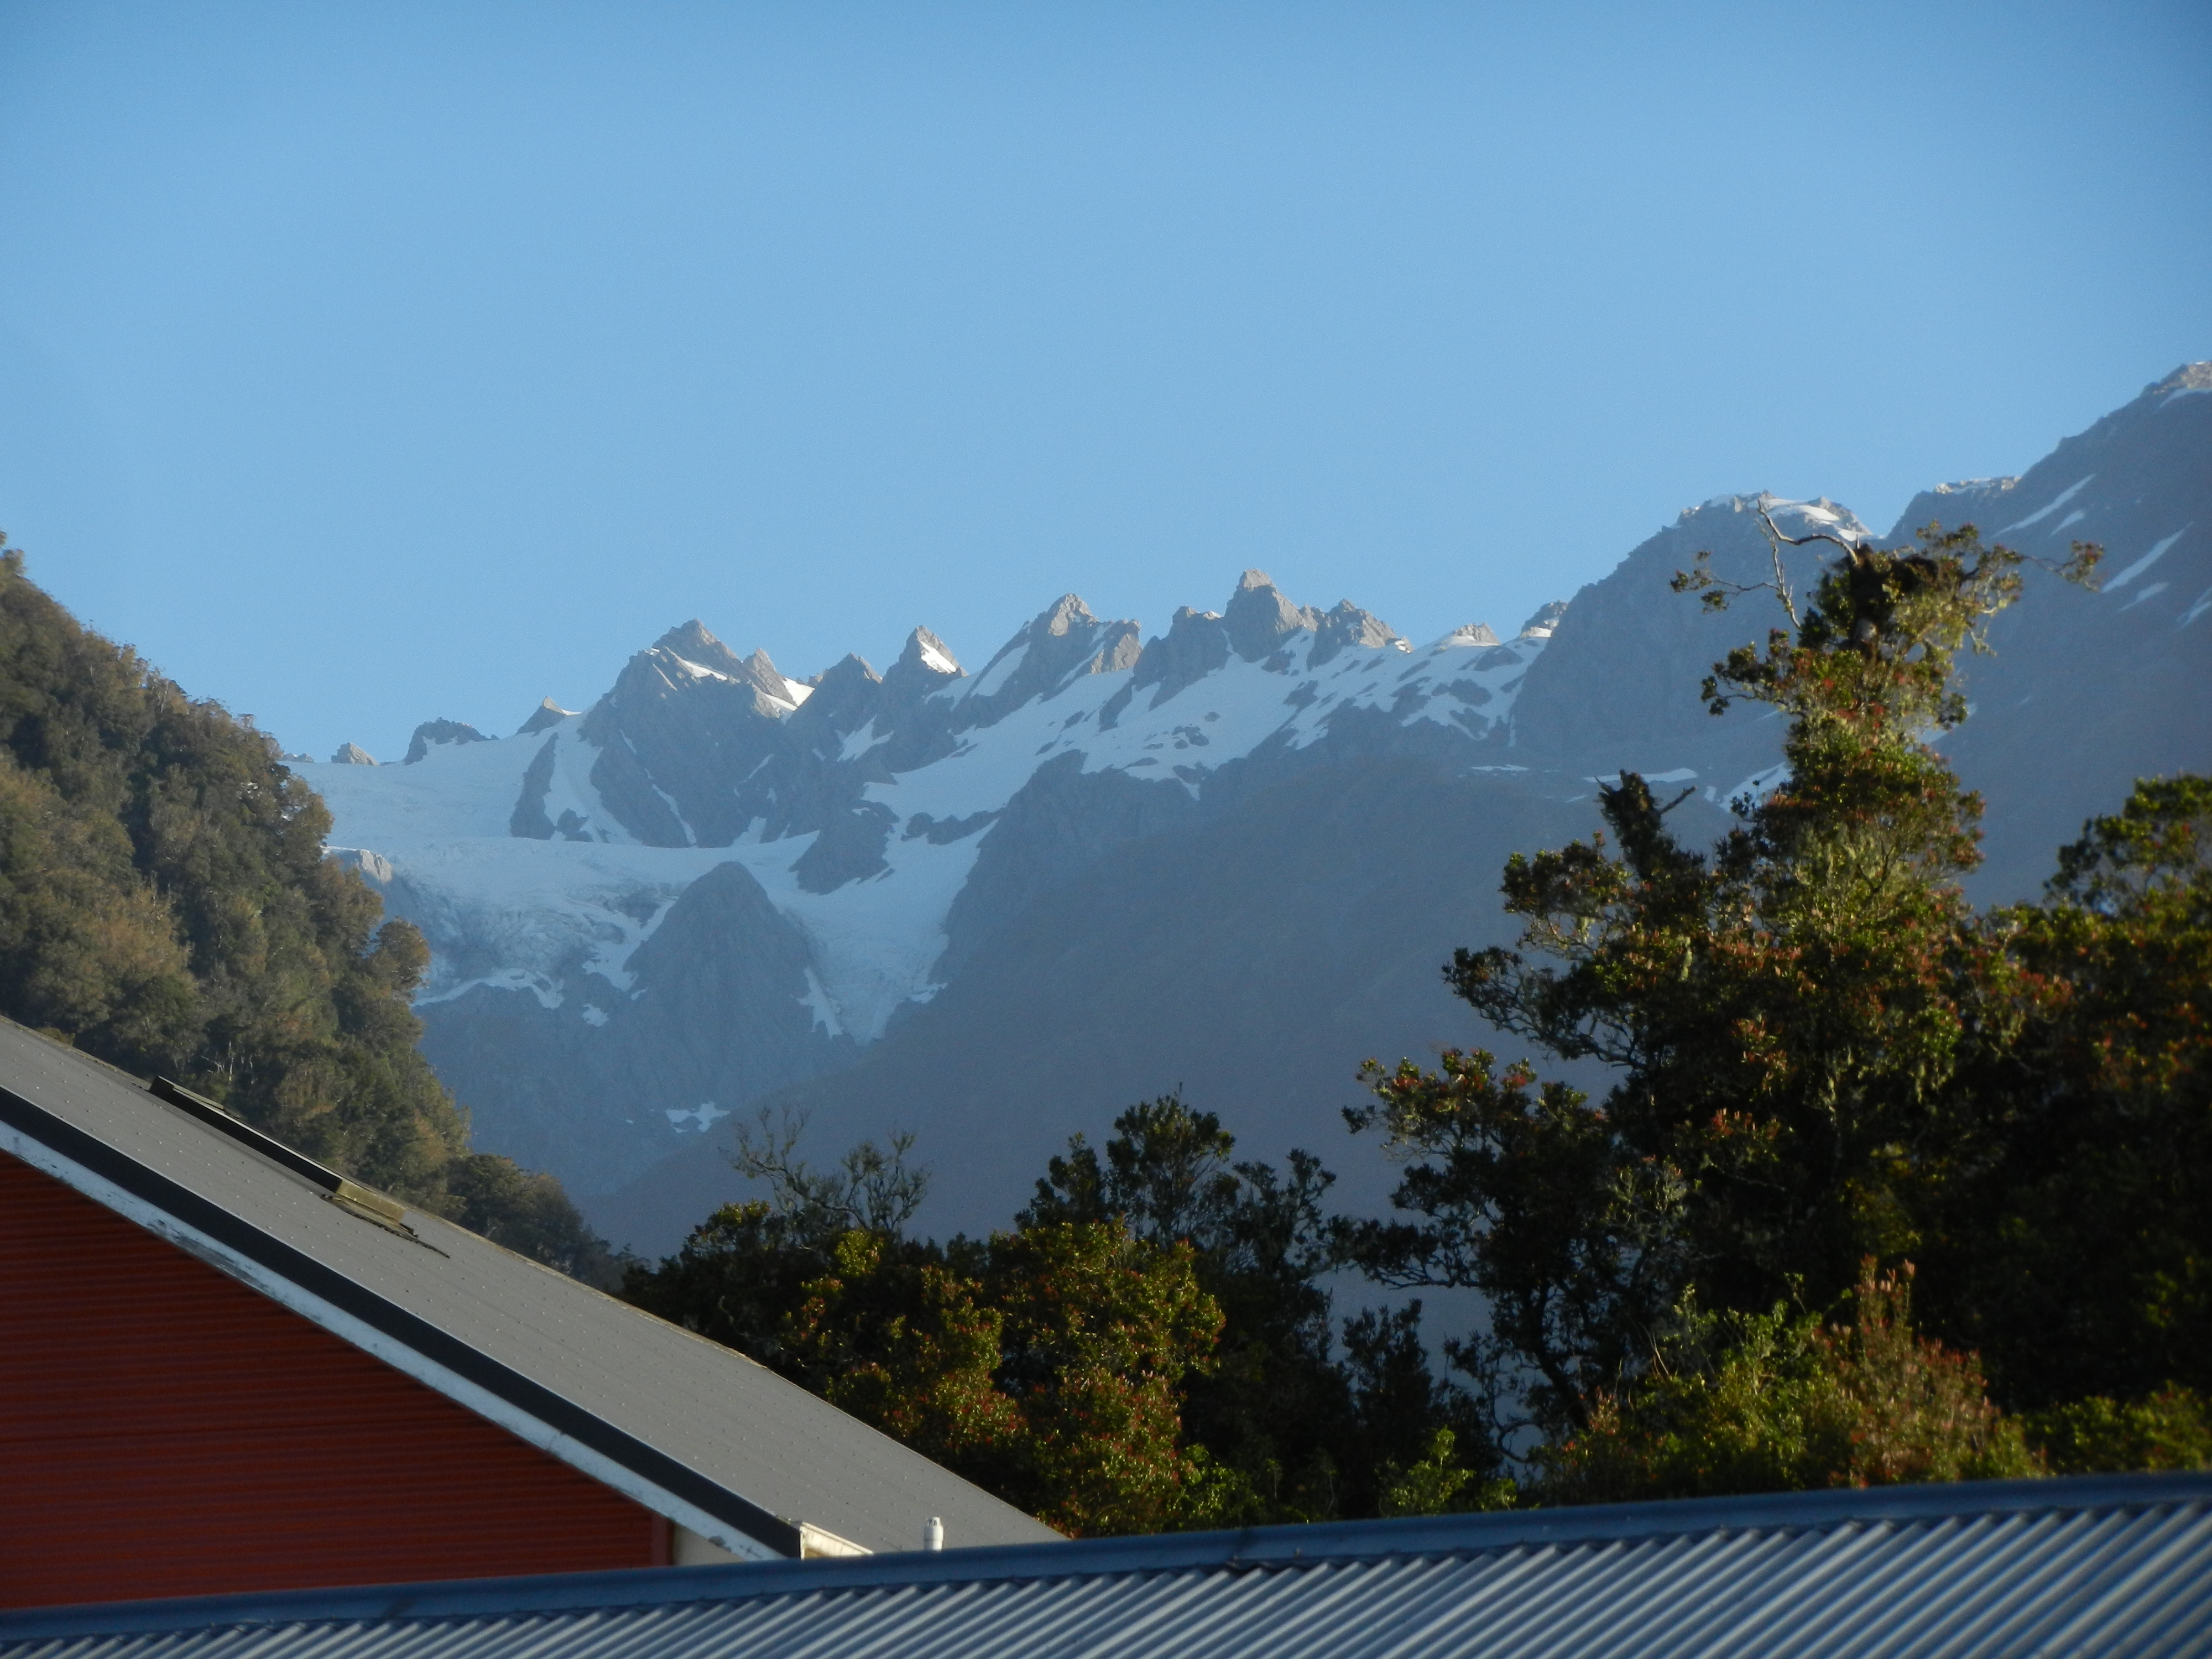 Building rooftops in the foreground with trees and glacier covered mountains in the background.